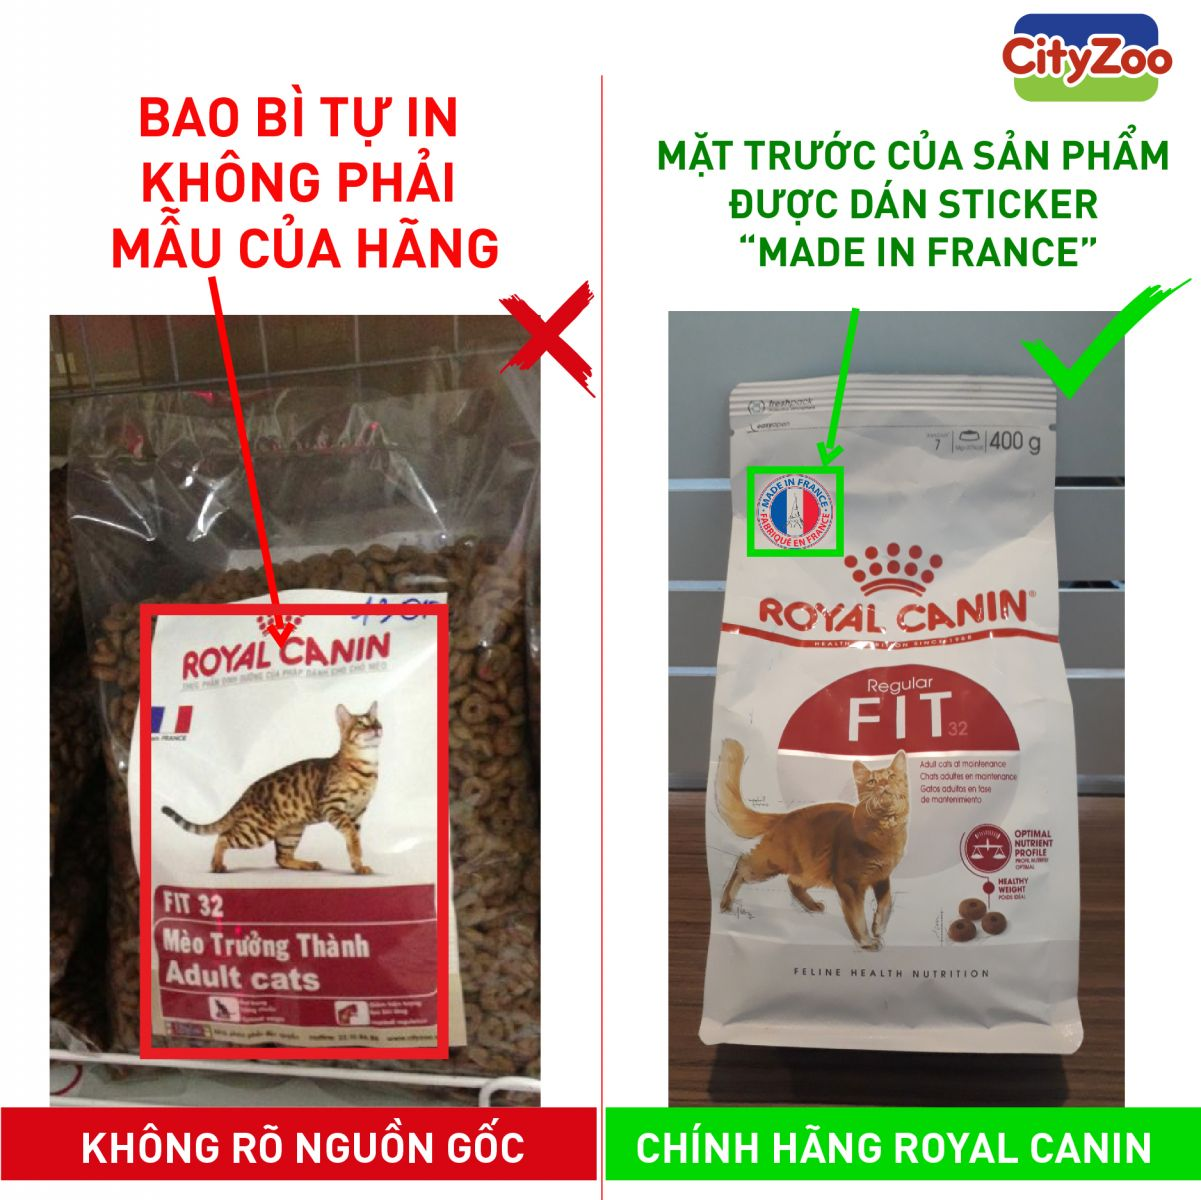 royal-canin-fit32-chinh-hang